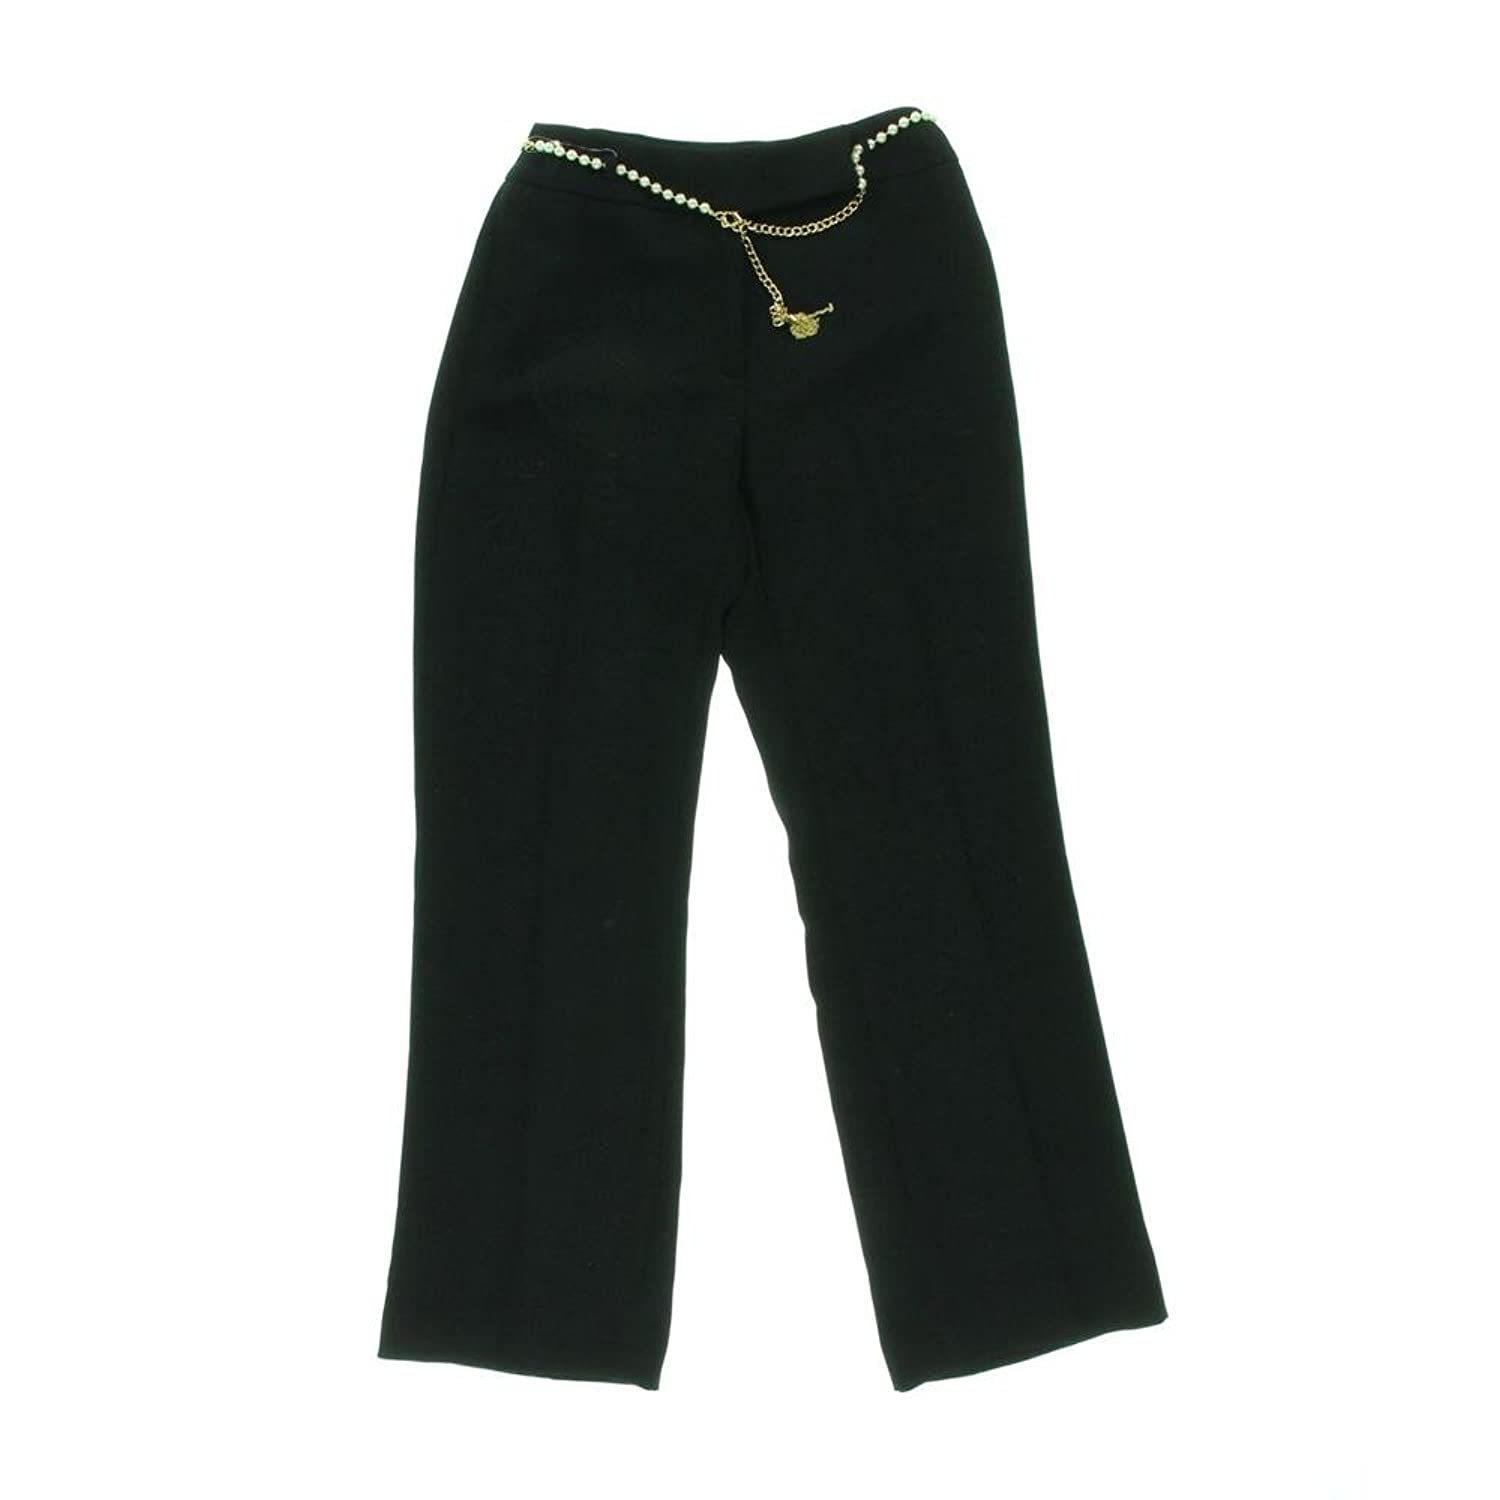 Tahari Black Cindy Pants